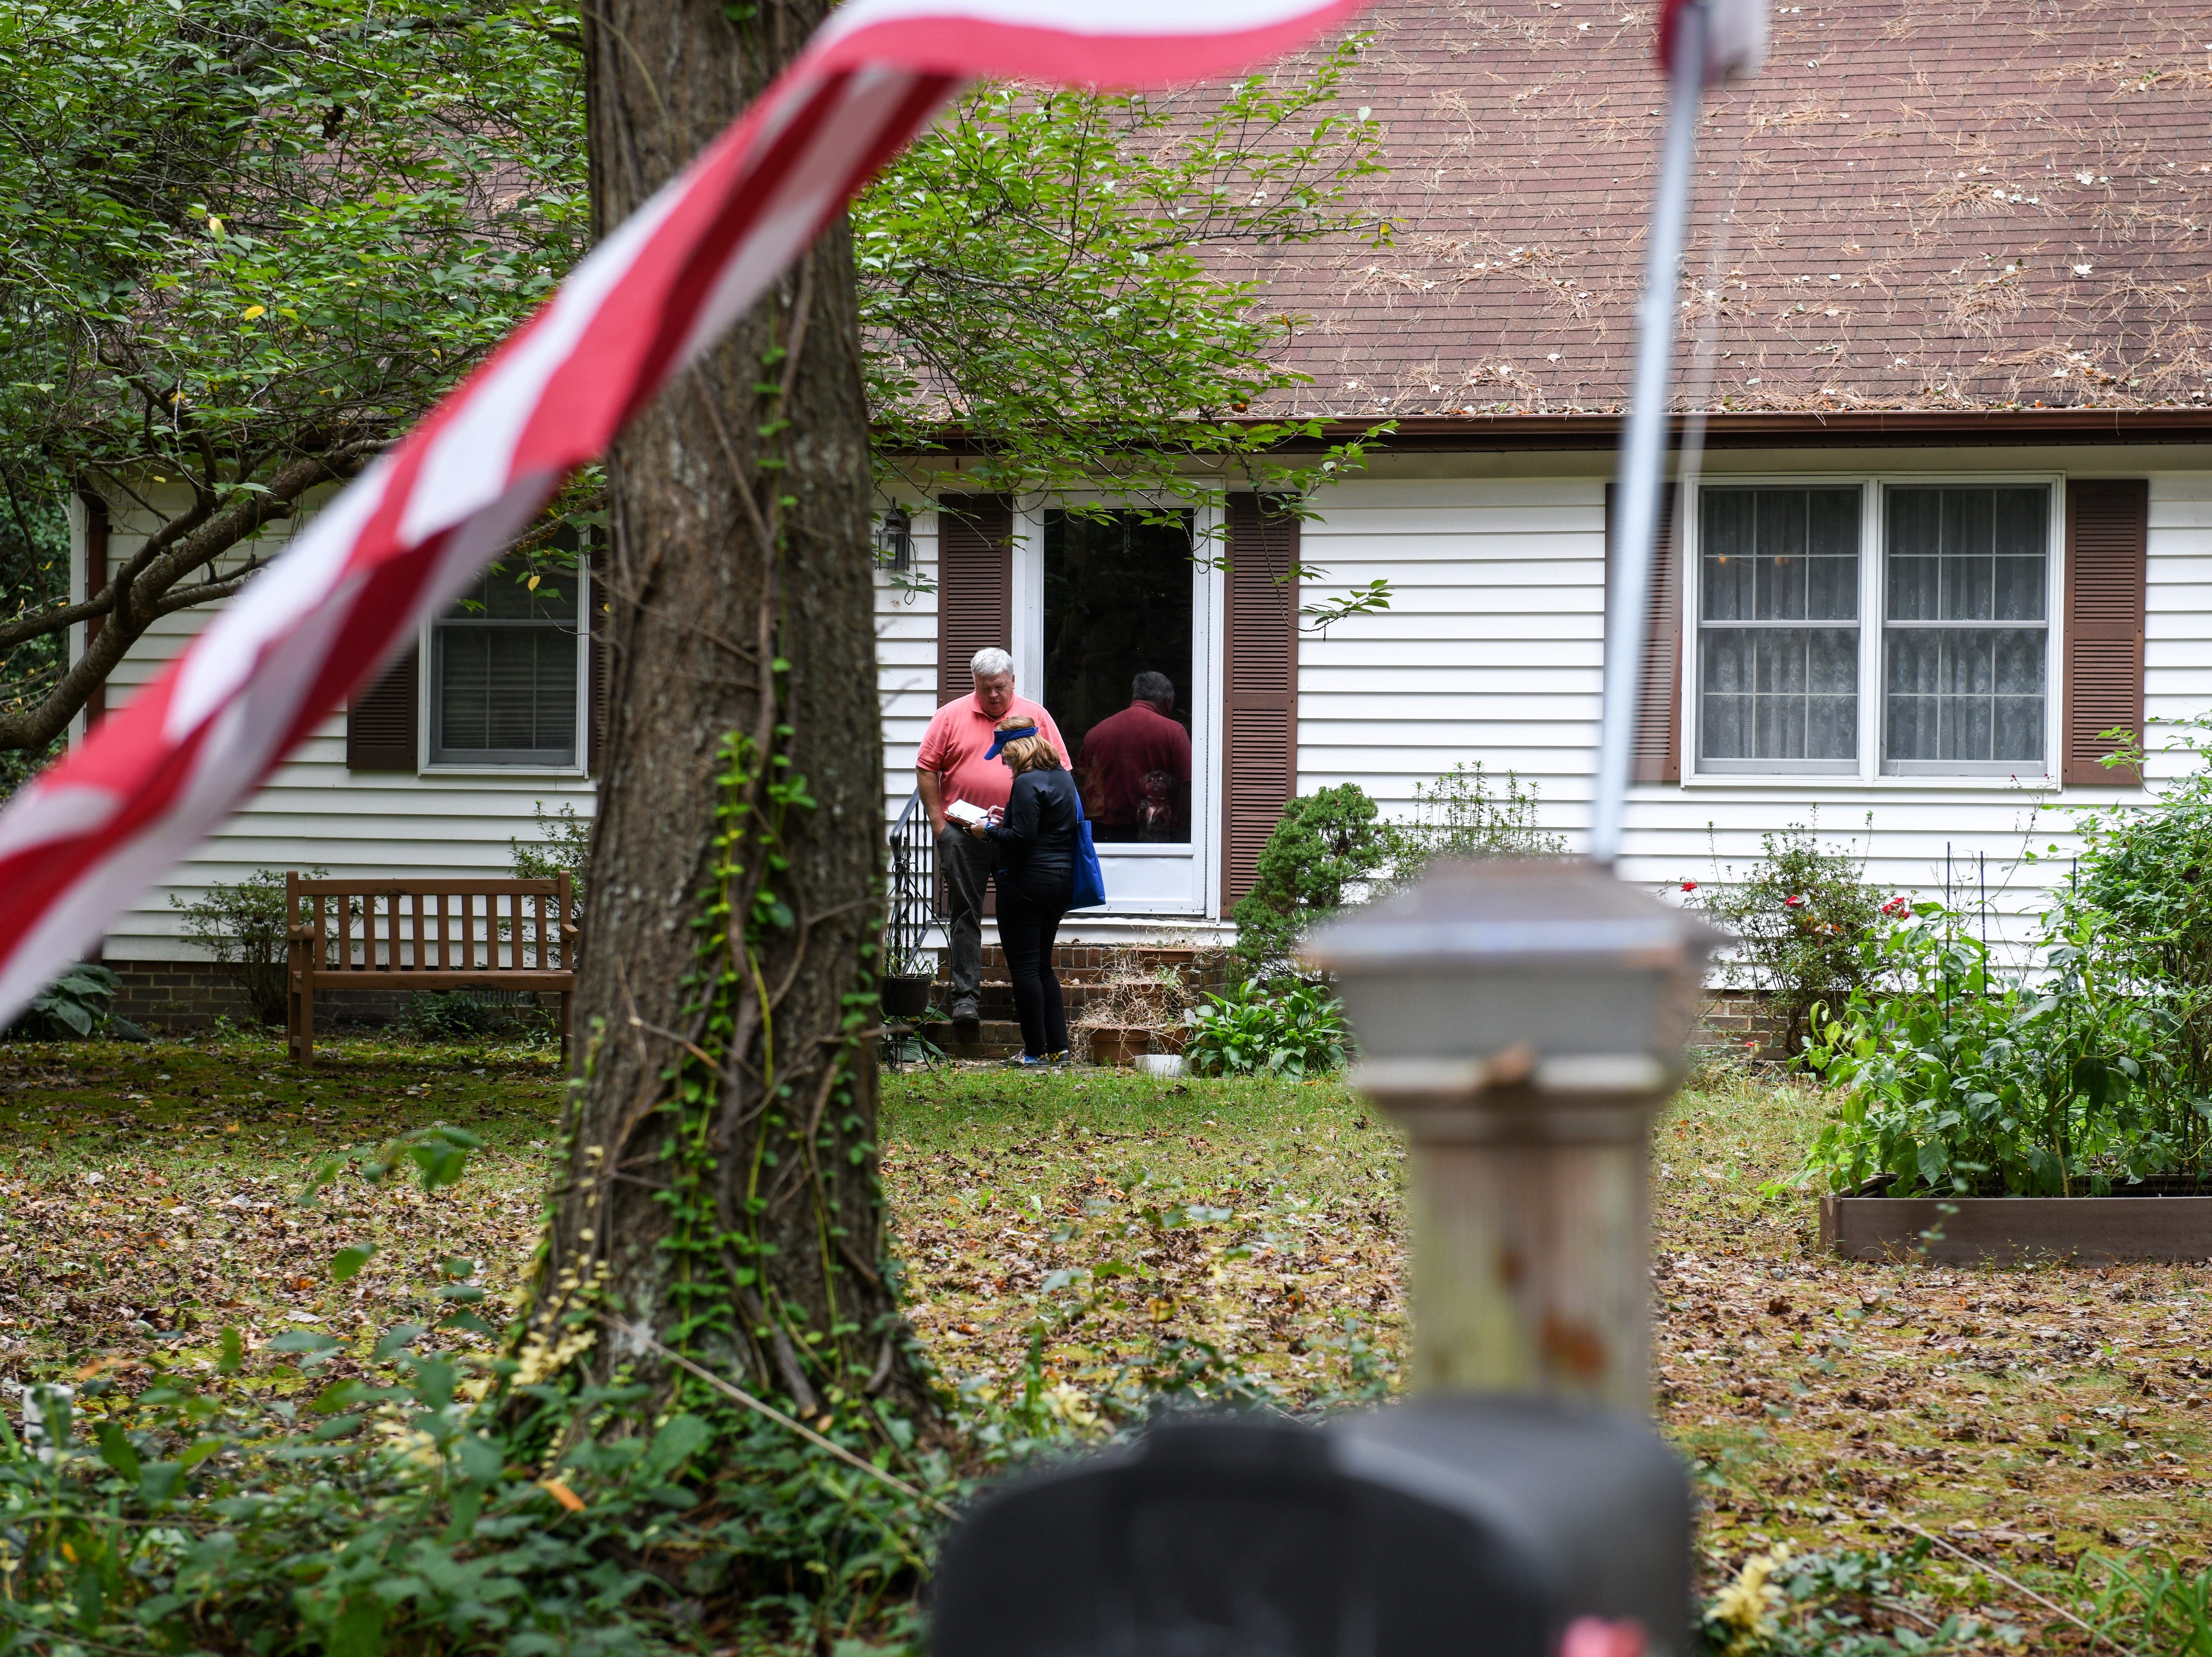 Delegate Mary Beth Carozza, Republican candidate for Maryland State Senate in District 38, talks to voter Jerry Douglas while canvassing in Salisbury on Saturday, Oct 13, 2018.